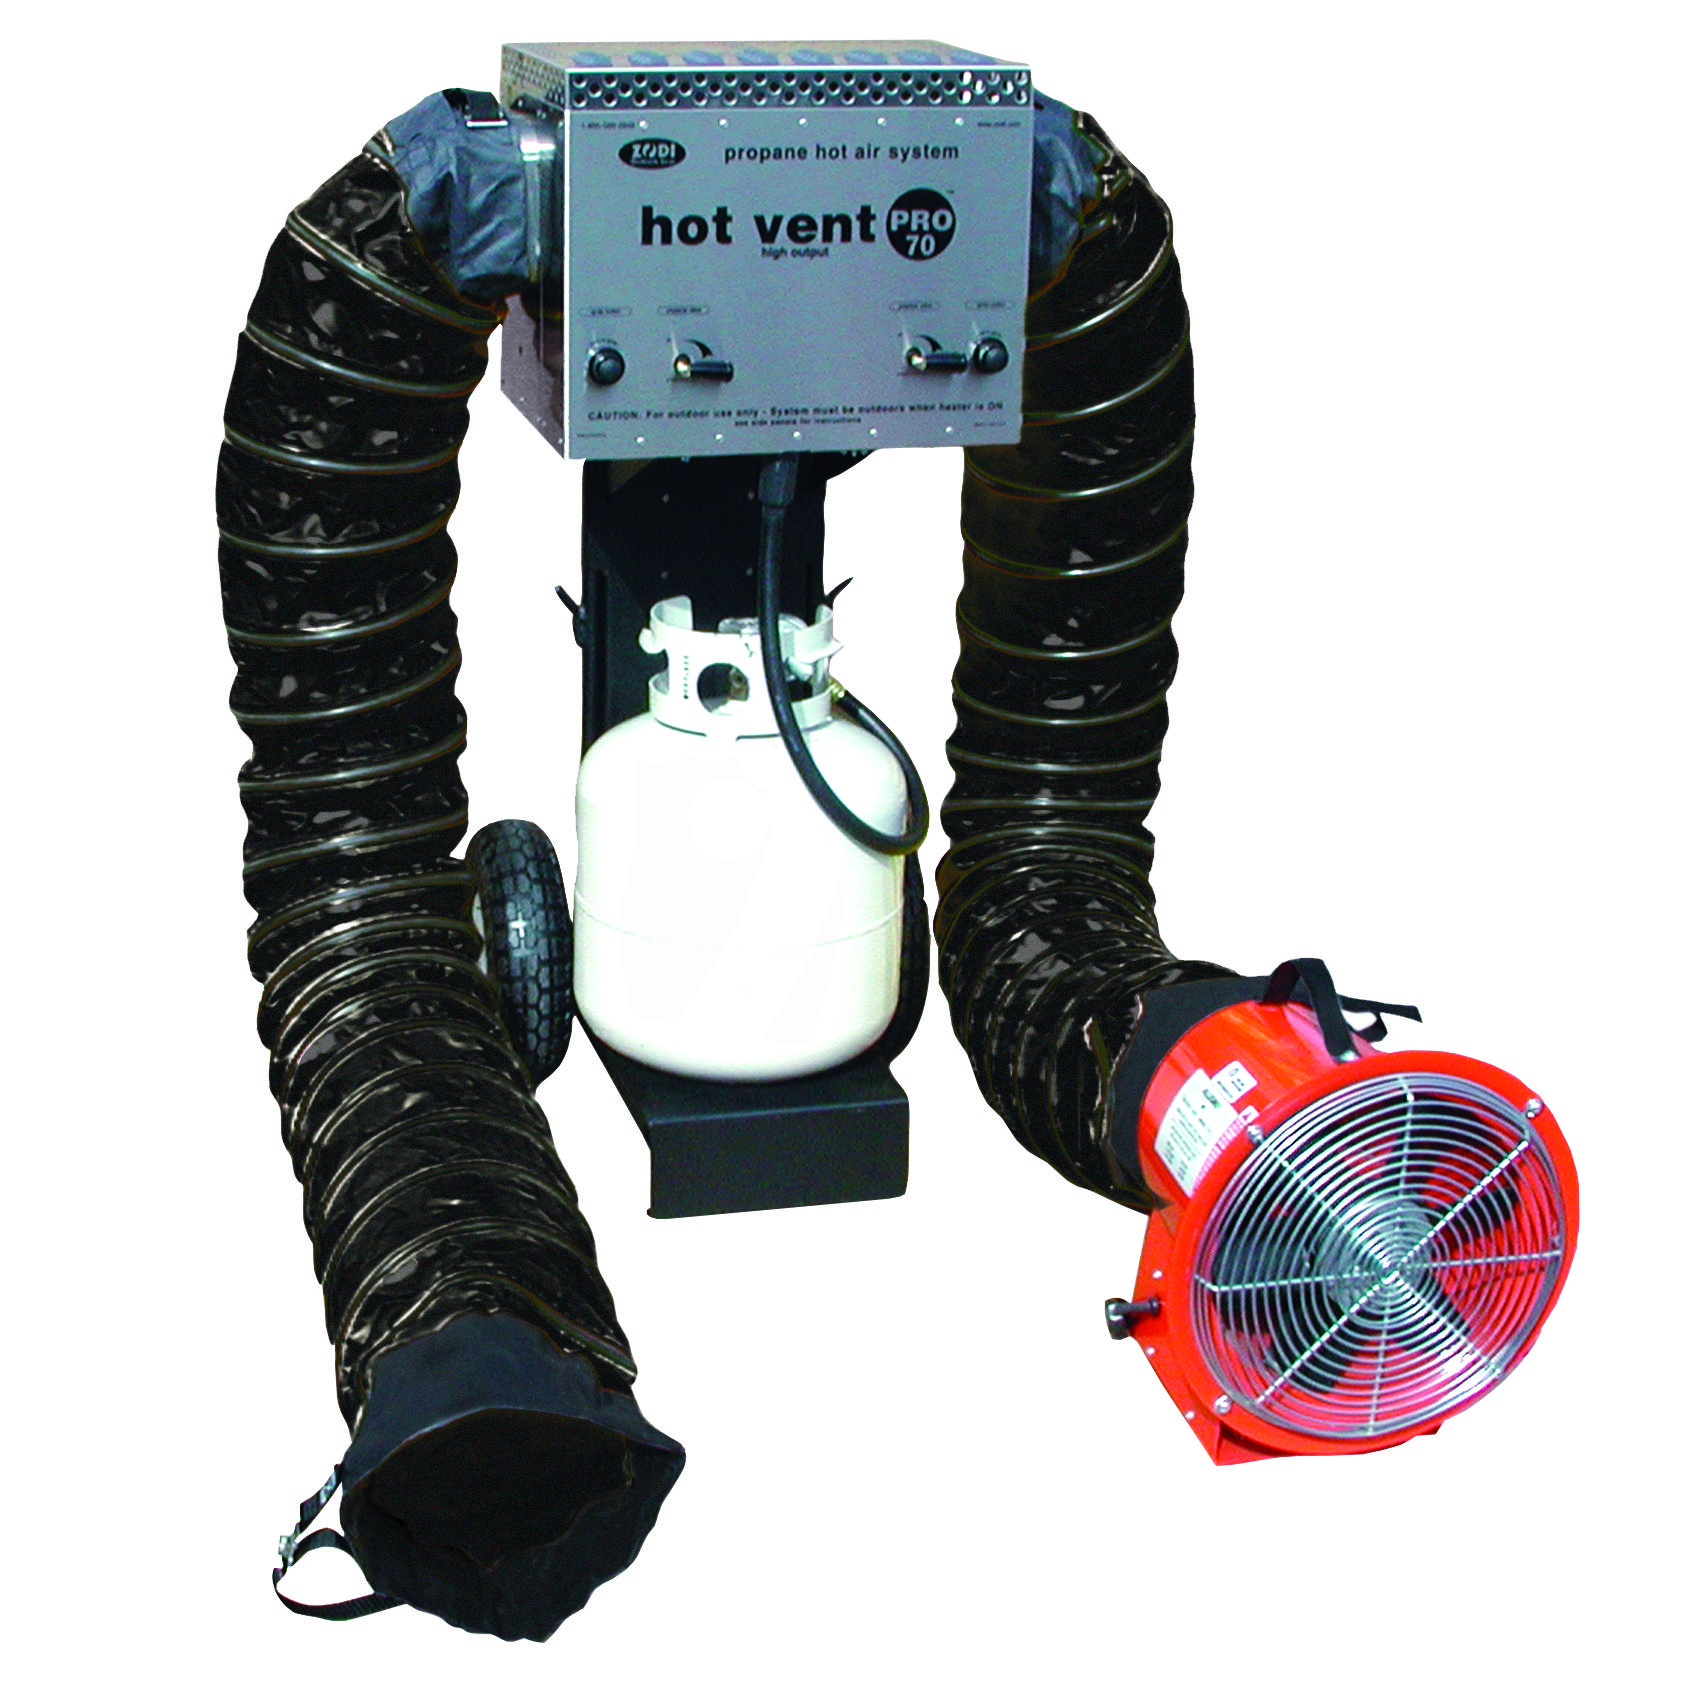 Industries Portable Air Heater 20 lb propane tank